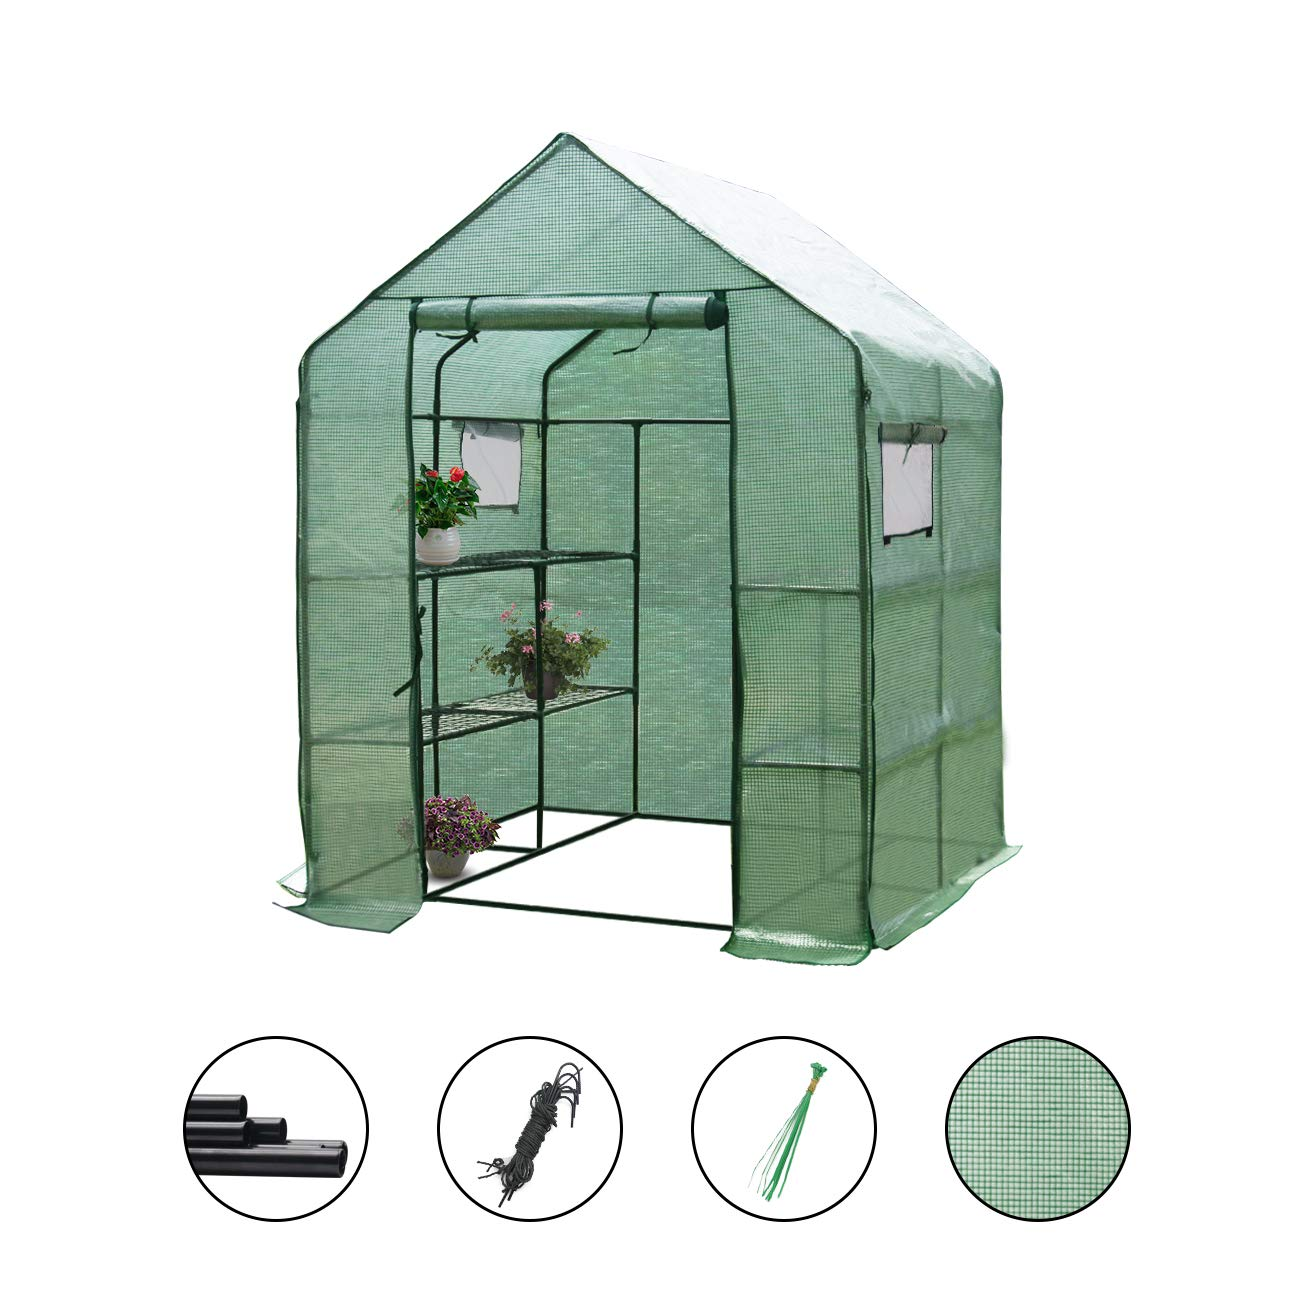 Large Walk-in Greenhouse with PE Cover 57'' L x 57'' W x 77'' H, 3 Tier 8 Shelves,Window Version and Roll-Up Zipper Door, Waterproof Cloche Portable Green House,Outdoor Gardening Organic Greenhouse by LYNSLIM